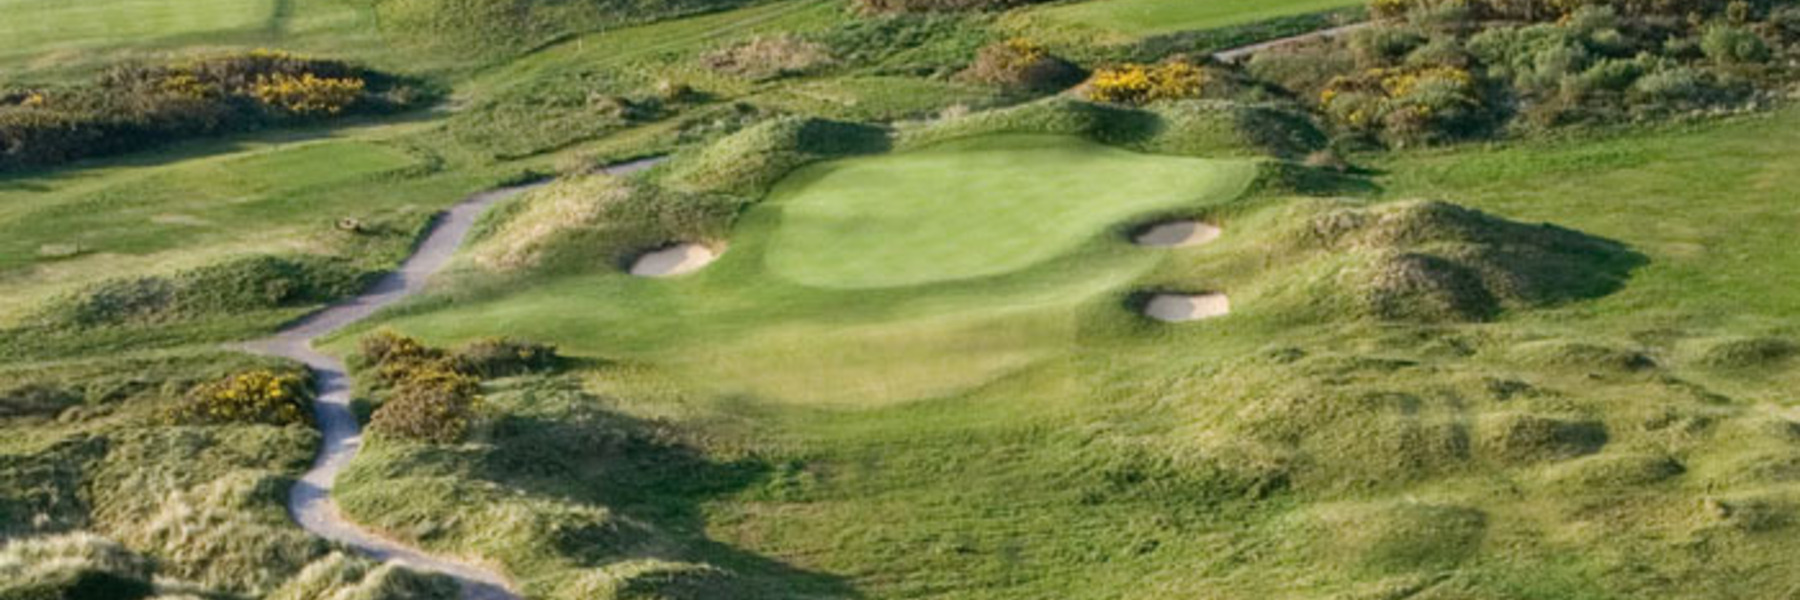 Golf Vacation Package - South West Ireland - Prime time. Prime Courses. Prime Hotels. 6 Nights/5 Rounds + Car for $2039!